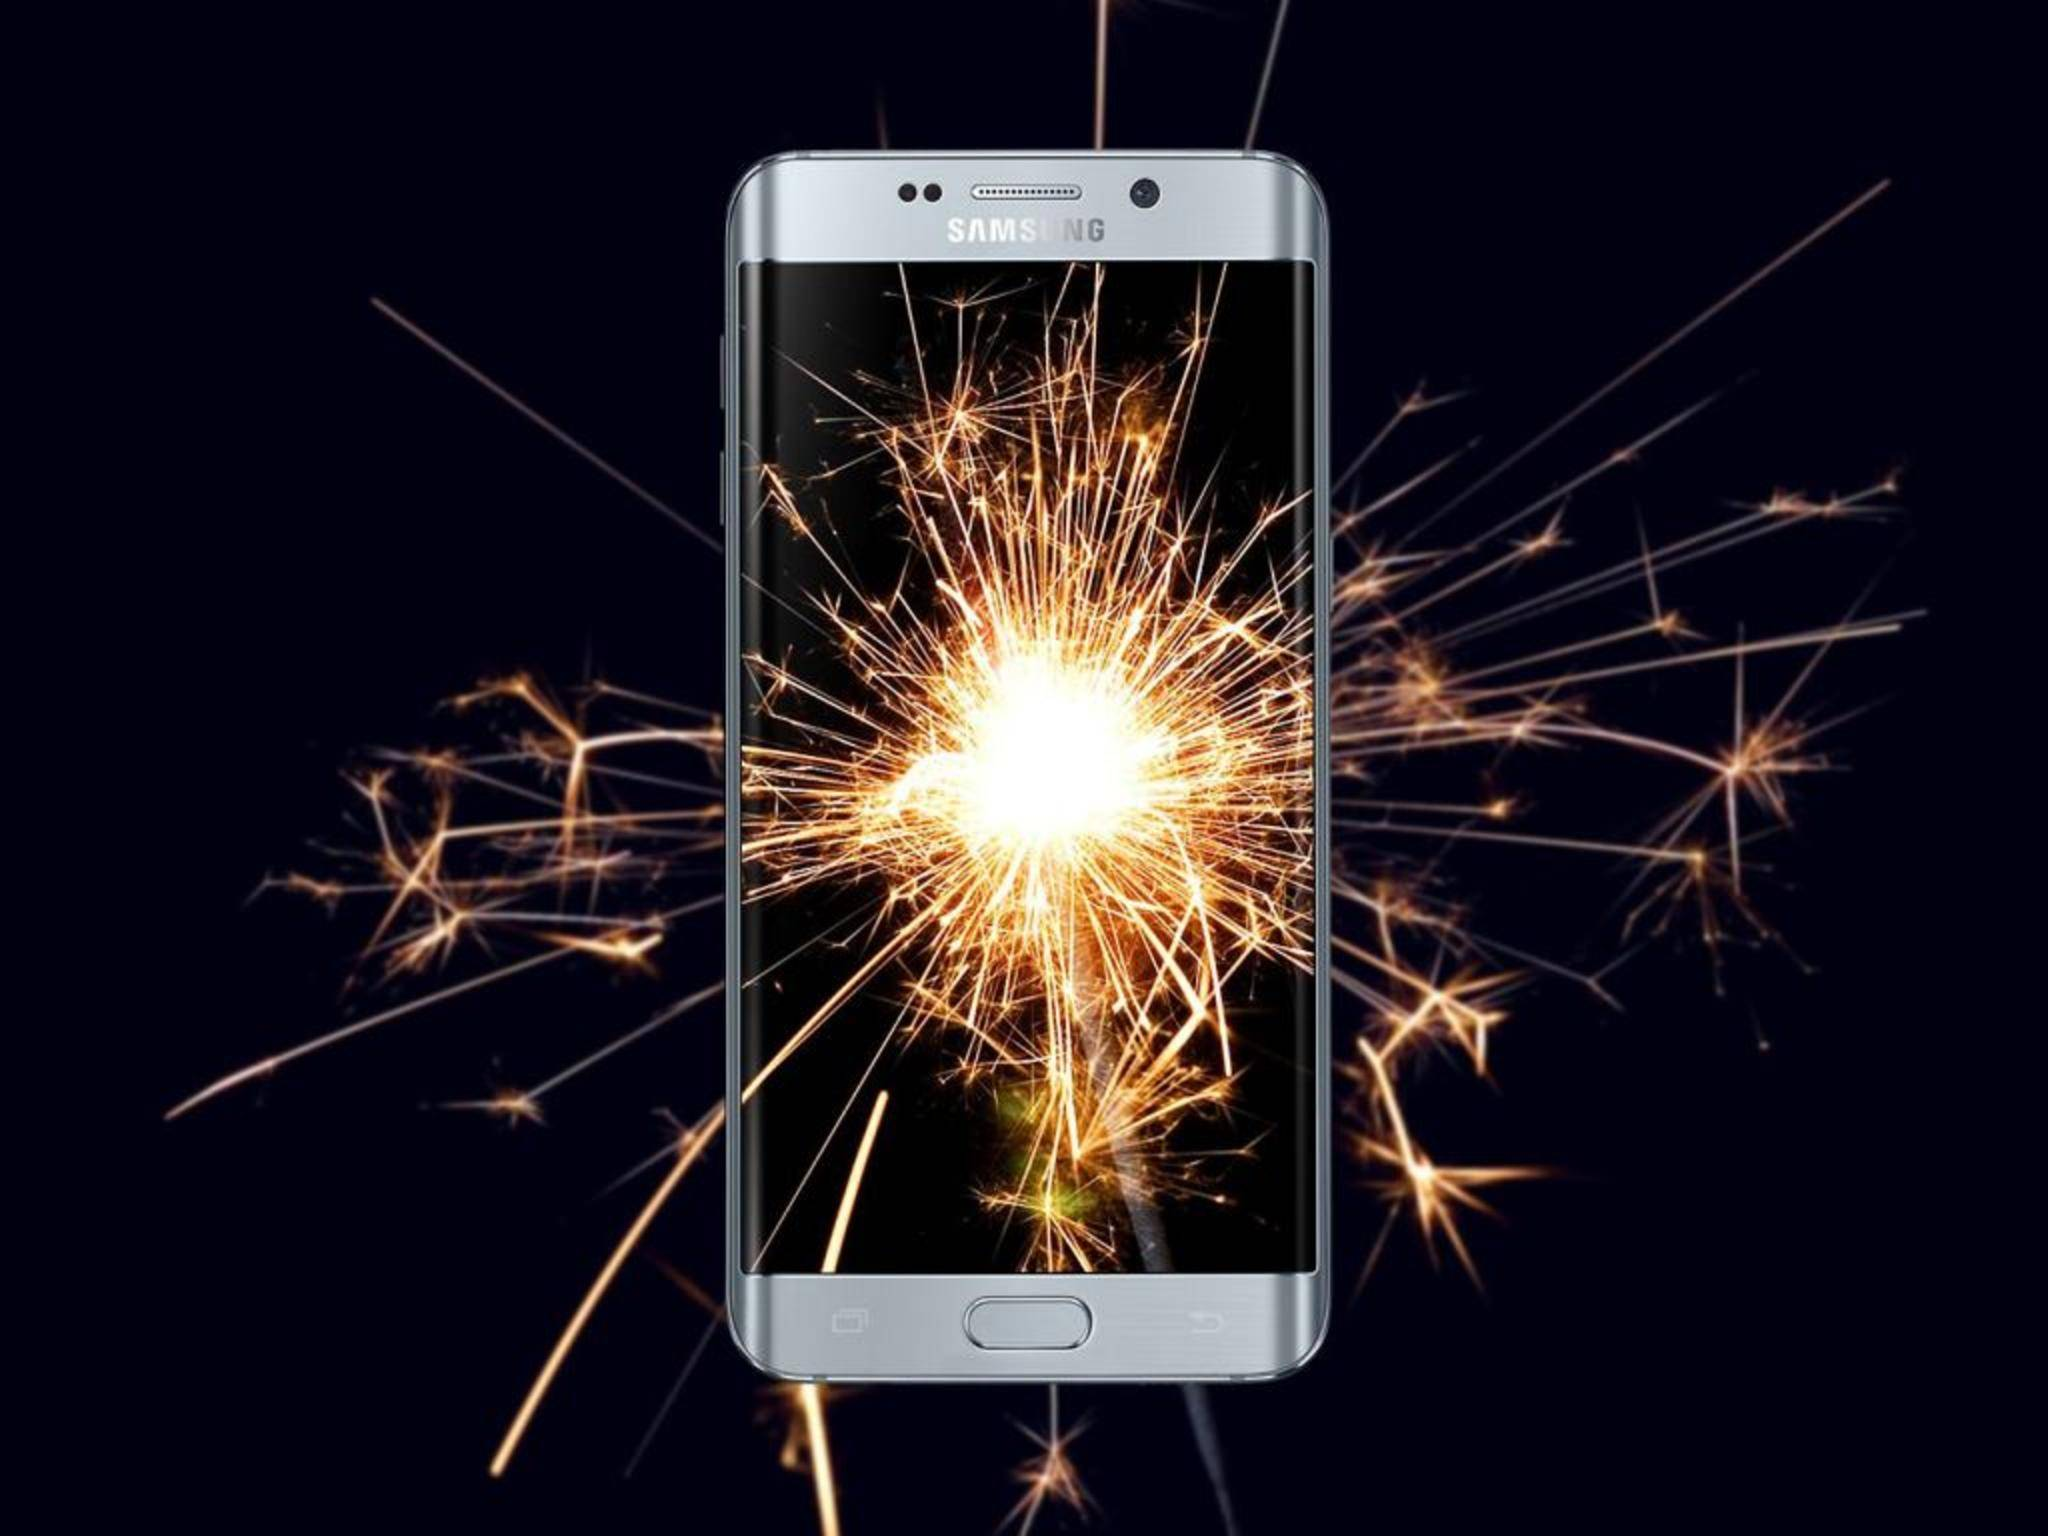 Das Galaxy Note 7 soll dem Galaxy S6 Edge Plus ähneln.